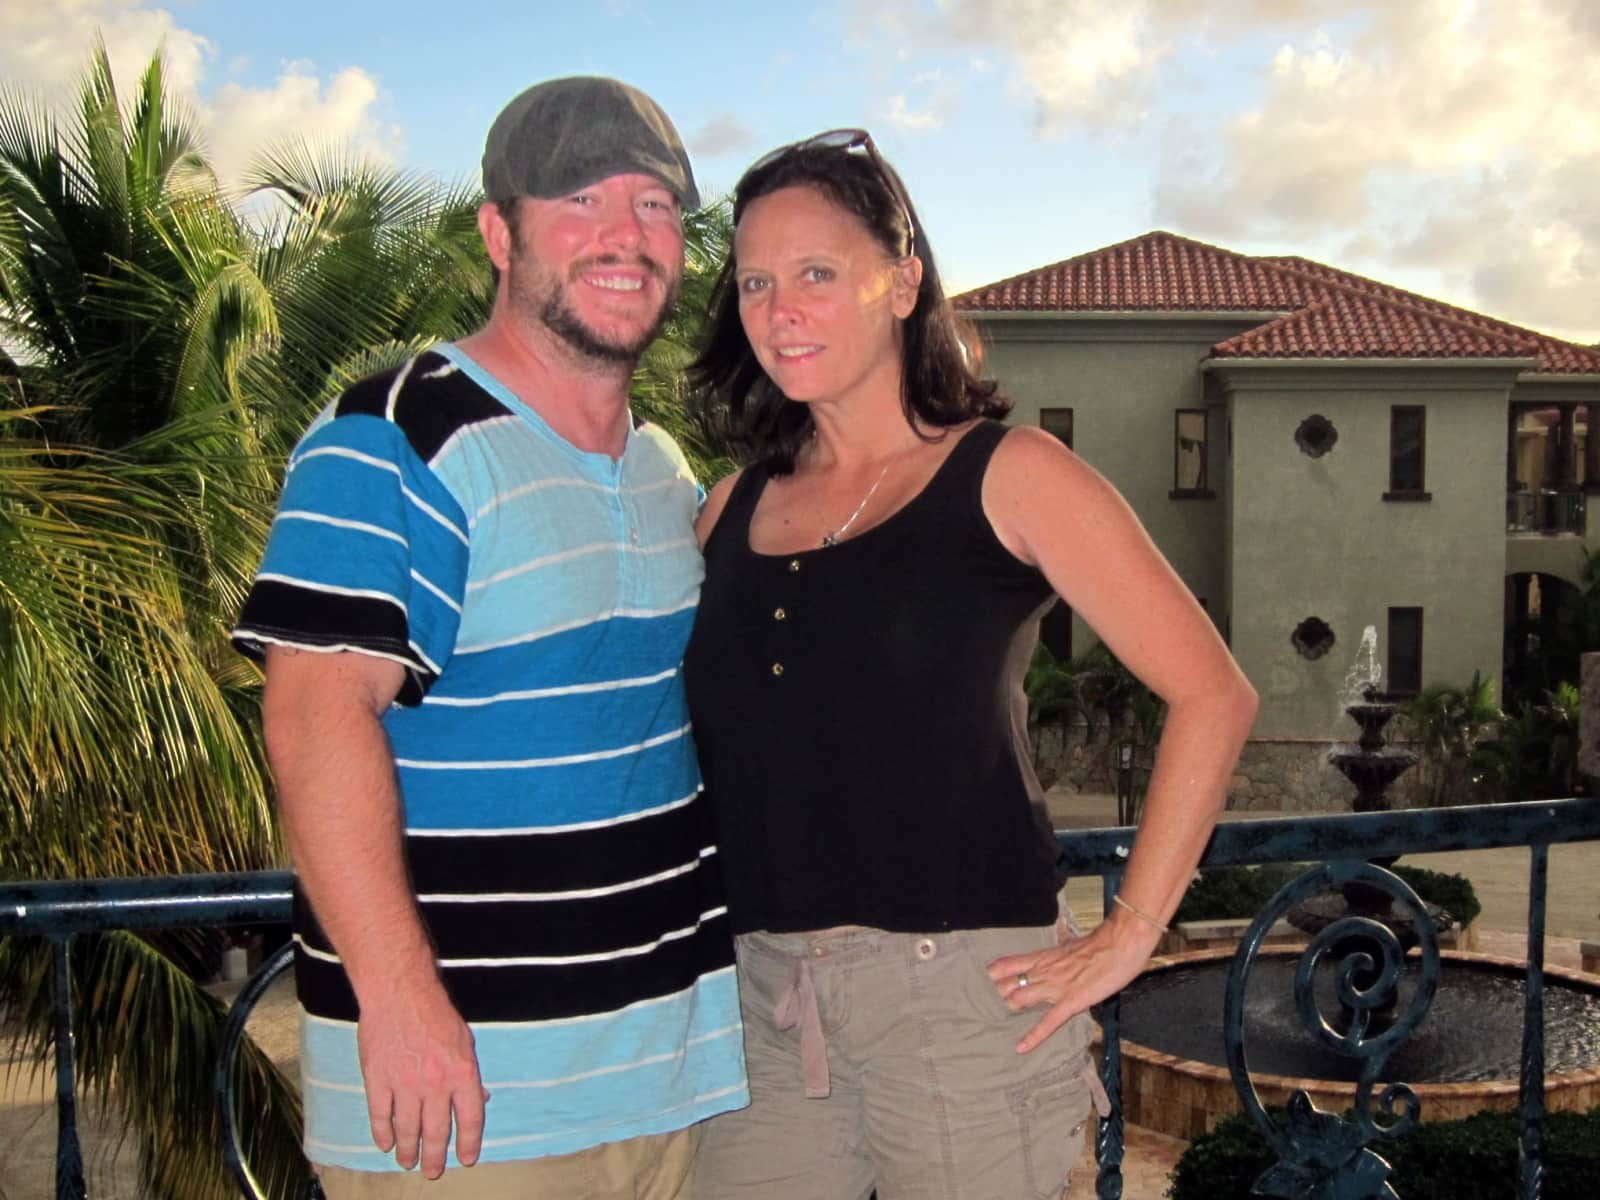 Heather tamara & Donny from Fernandina Beach, Florida, United States